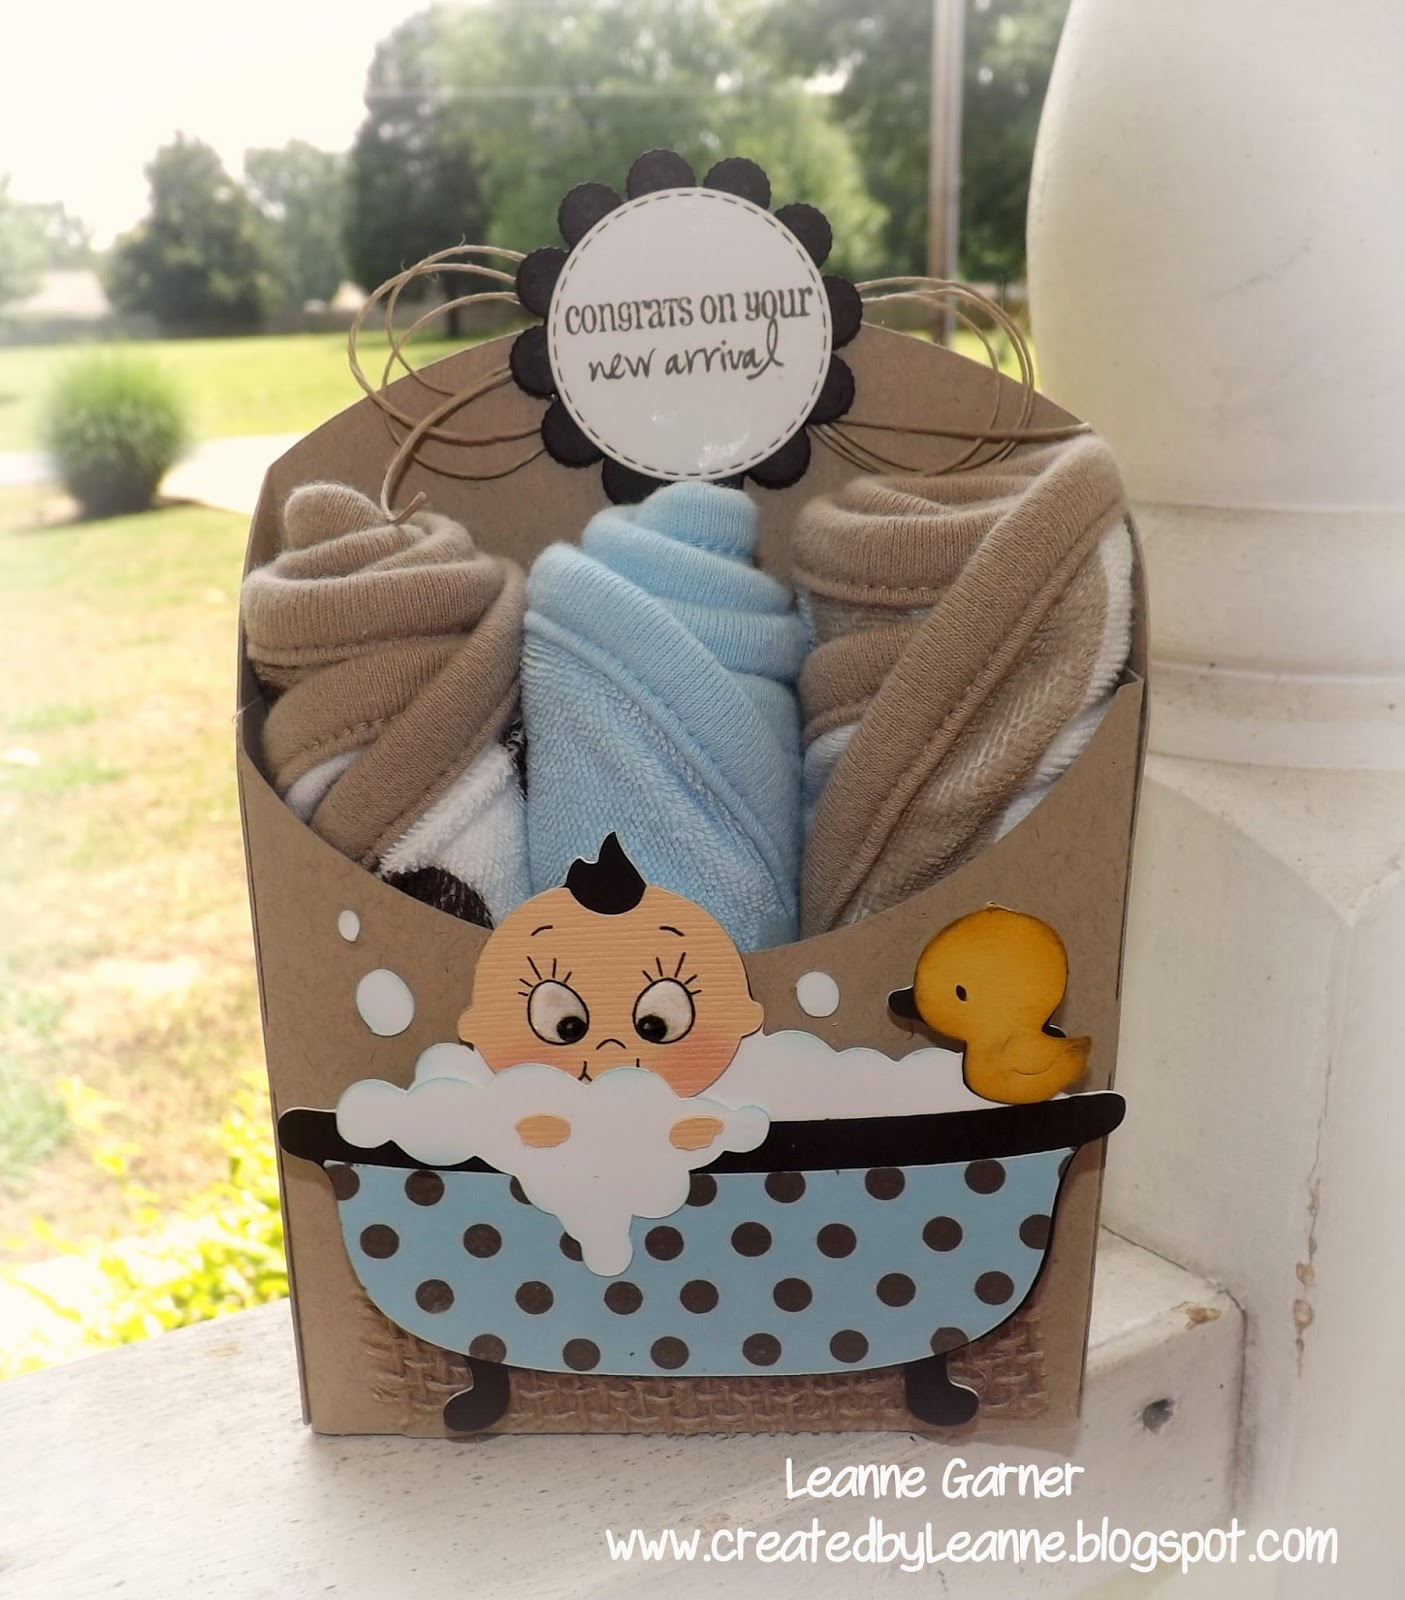 cutest baby cute baby gifts ideas french fries baby shower gifts